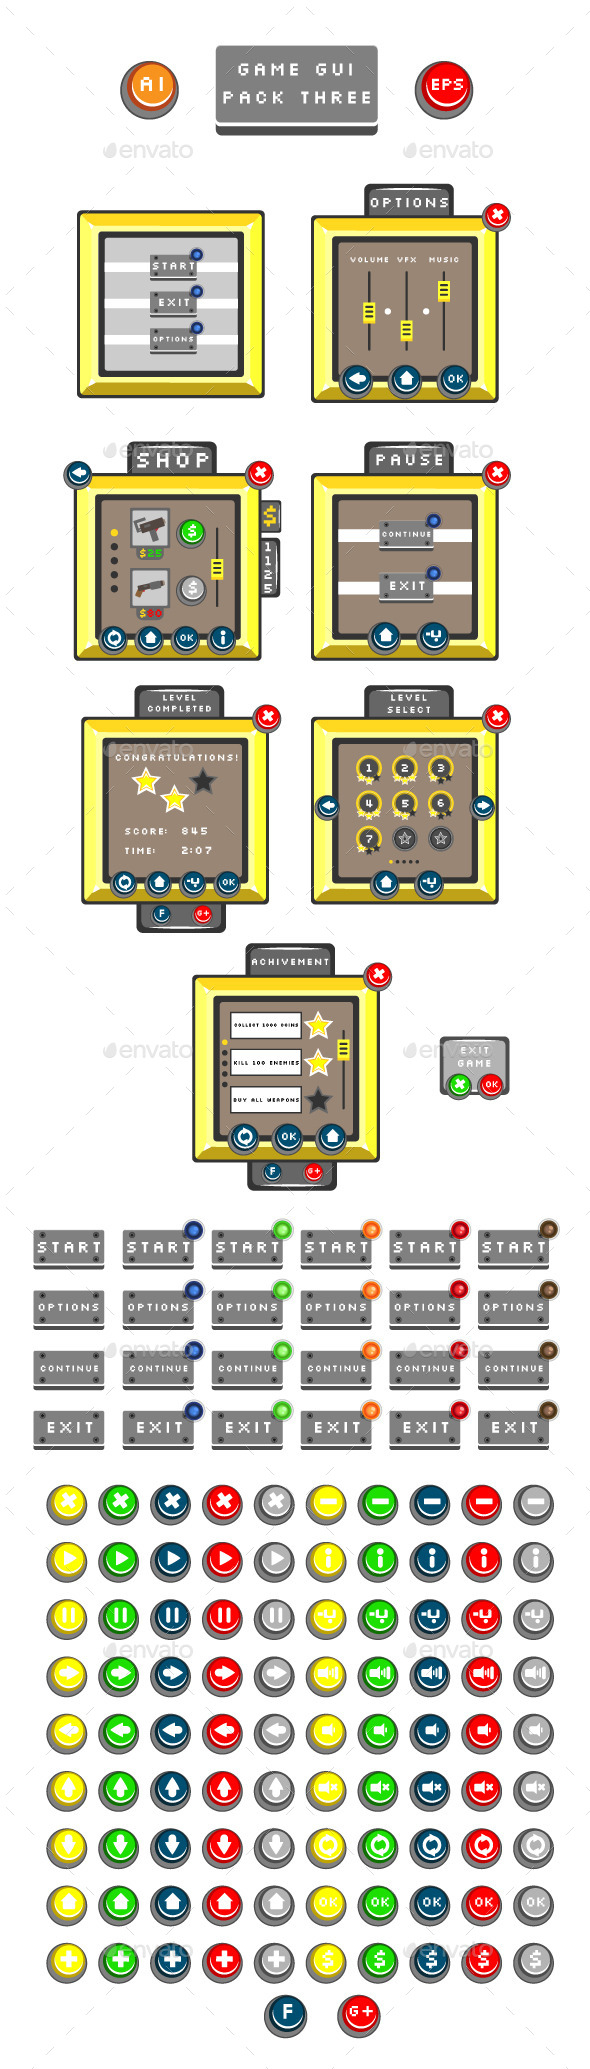 GraphicRiver Game GUI Pack Three 10797362